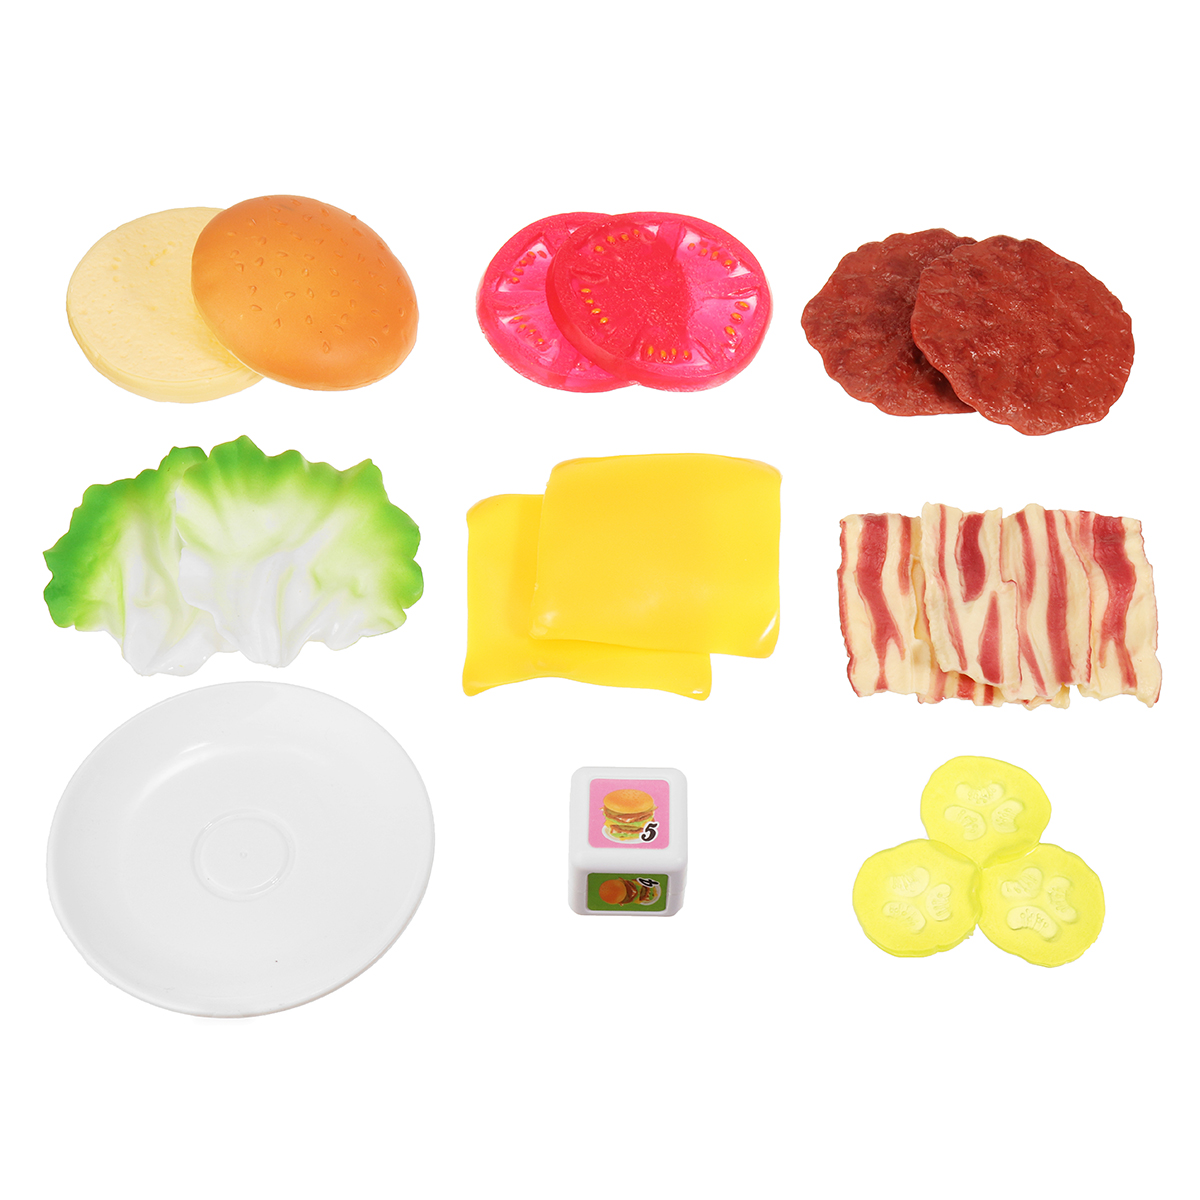 16 Piles Up Stacking Hamburger Plastic Pretend Play Baby Balance Stacking Game Toys